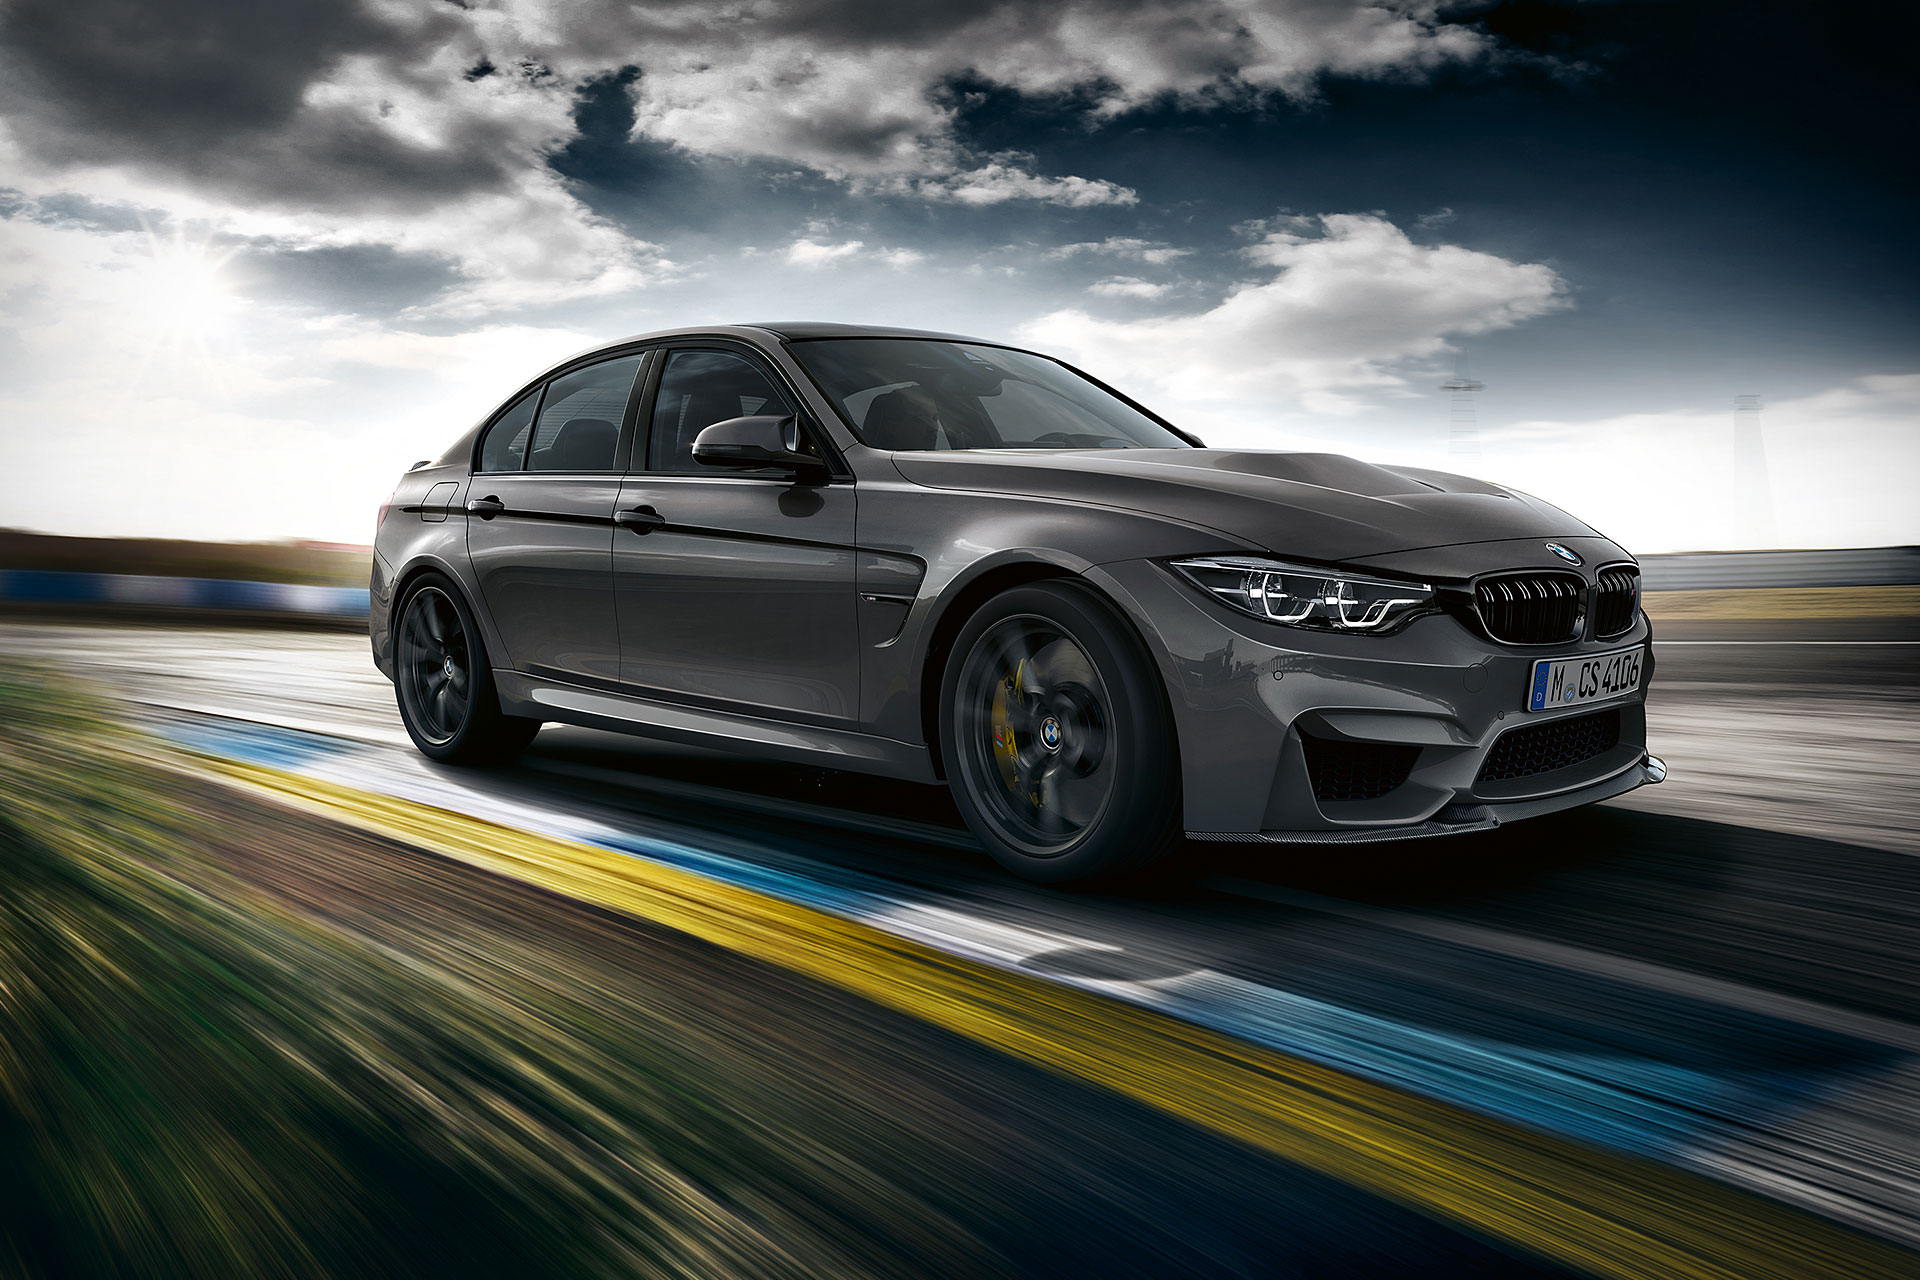 BMW-m3-cs-DTKMEN-2.jpg